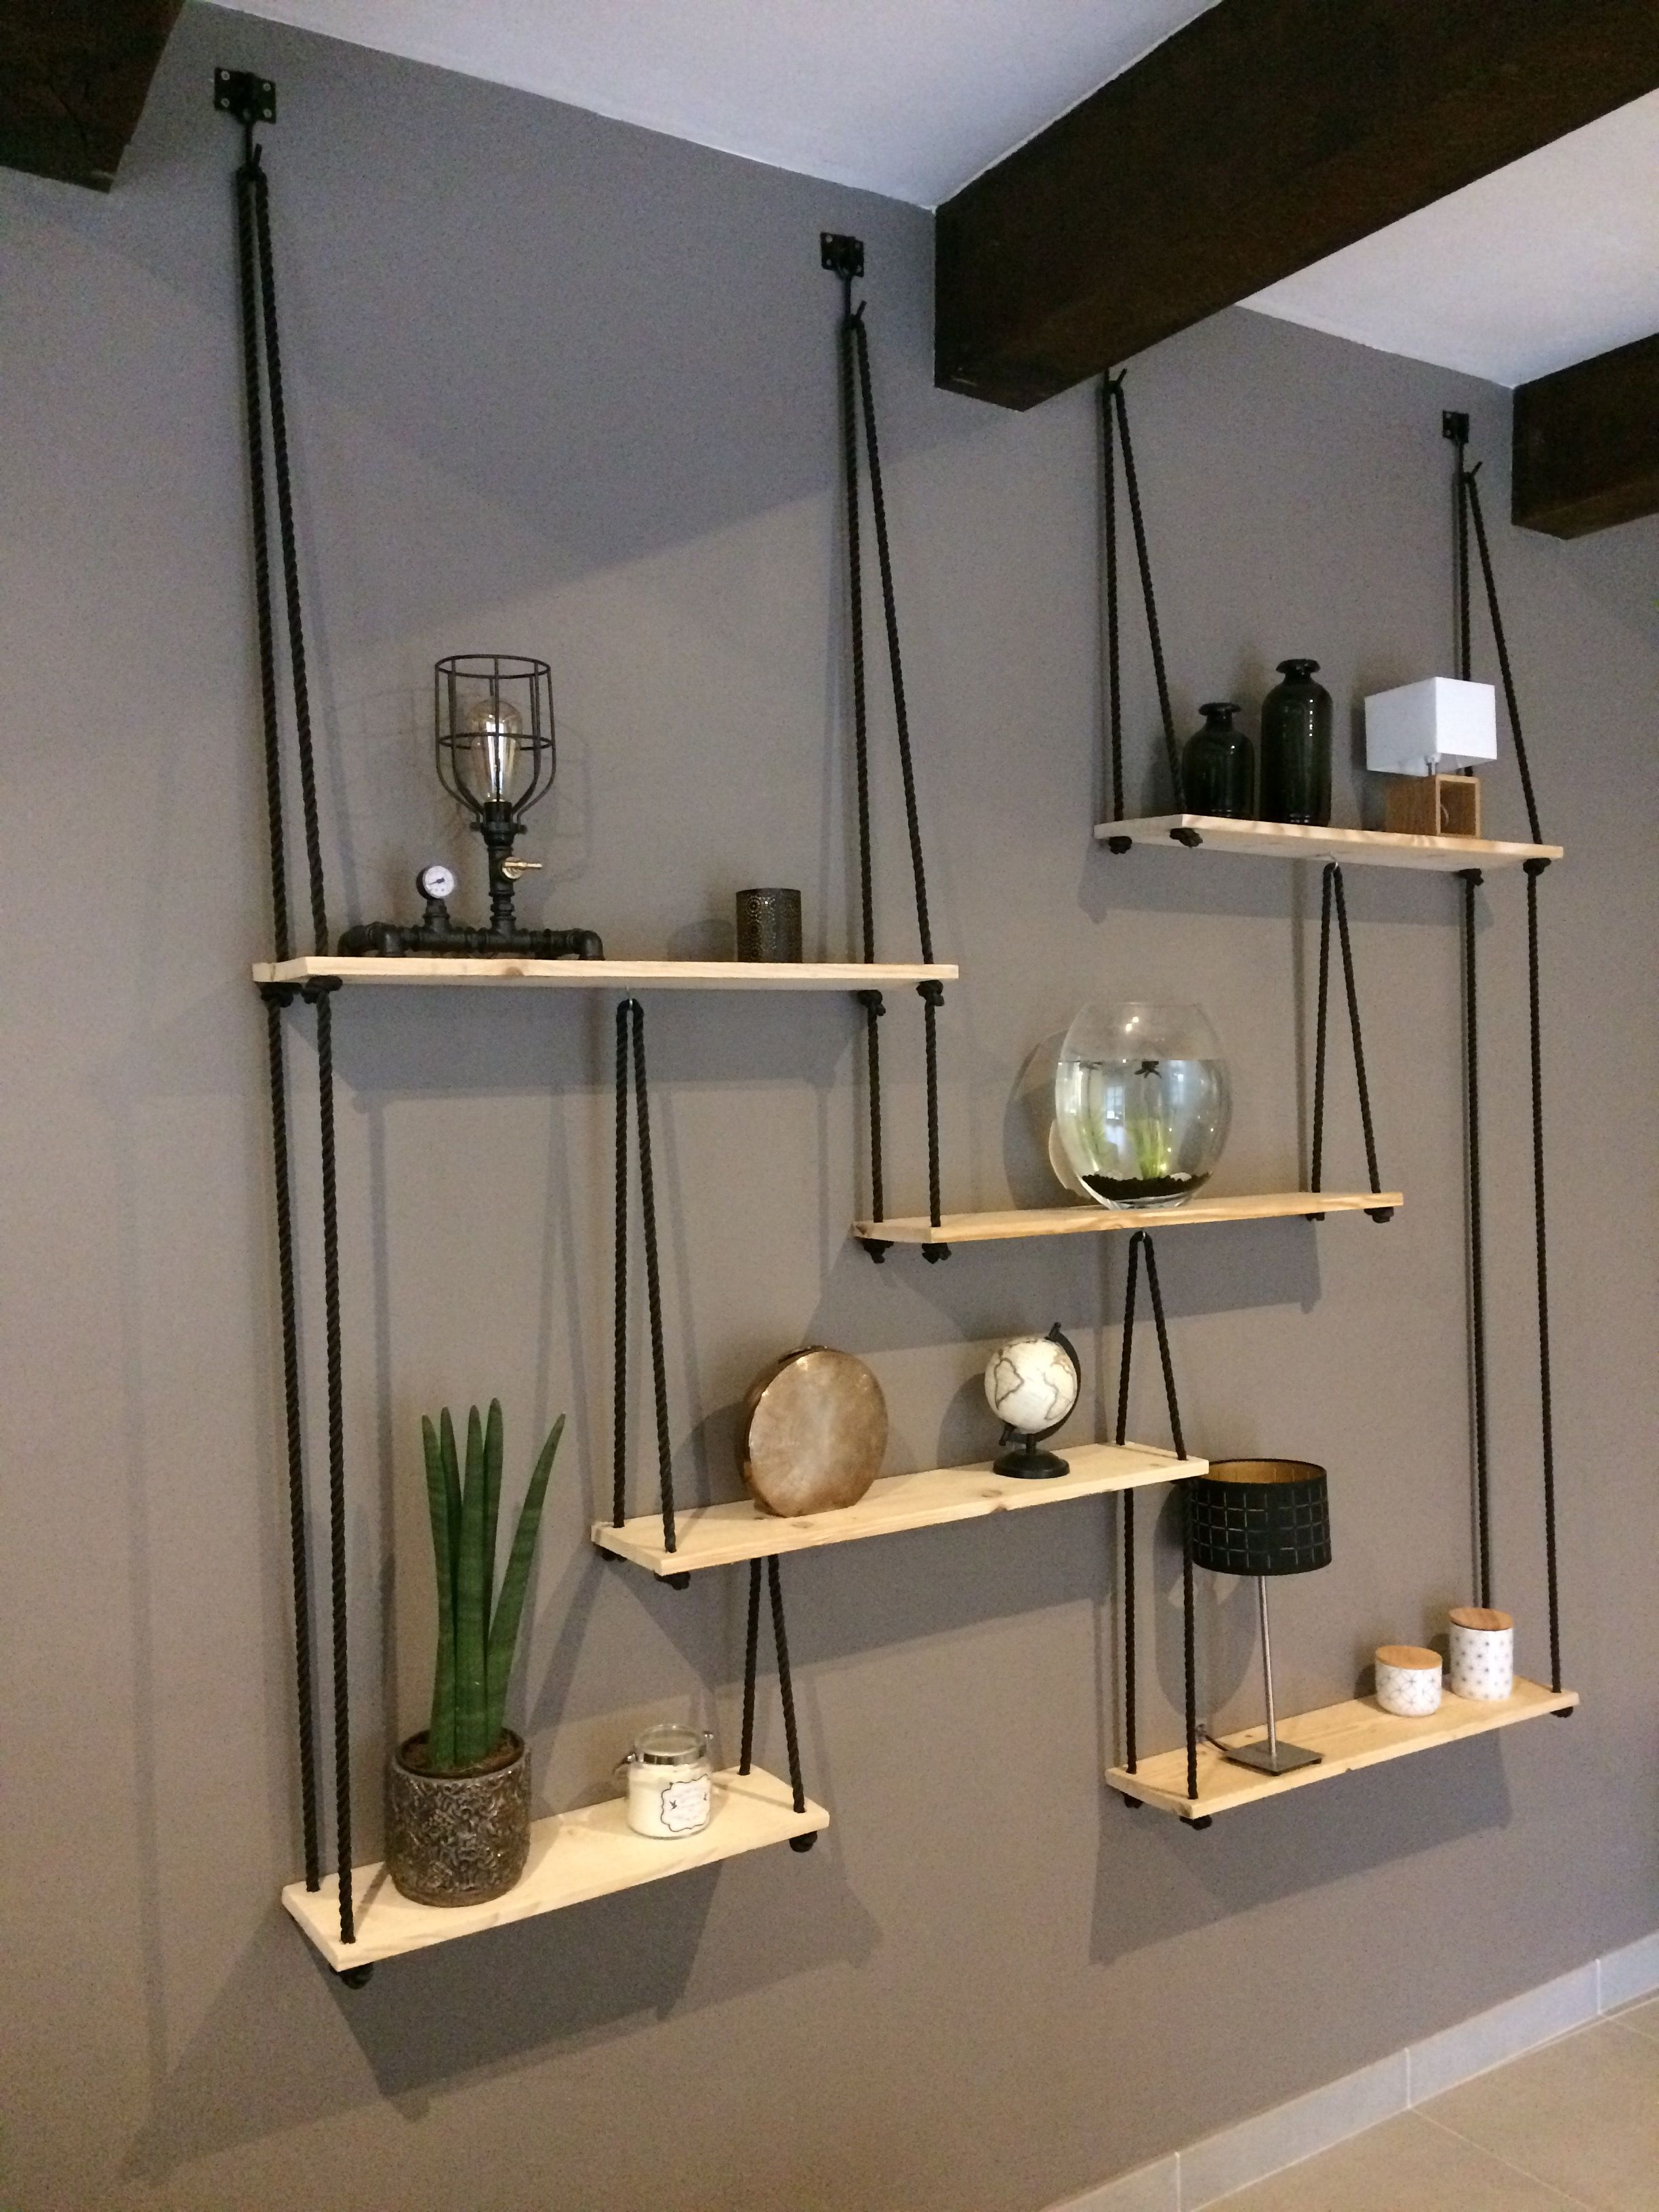 Diy Natural Wood Shelves With Rope And Hooks Diy Home Decor